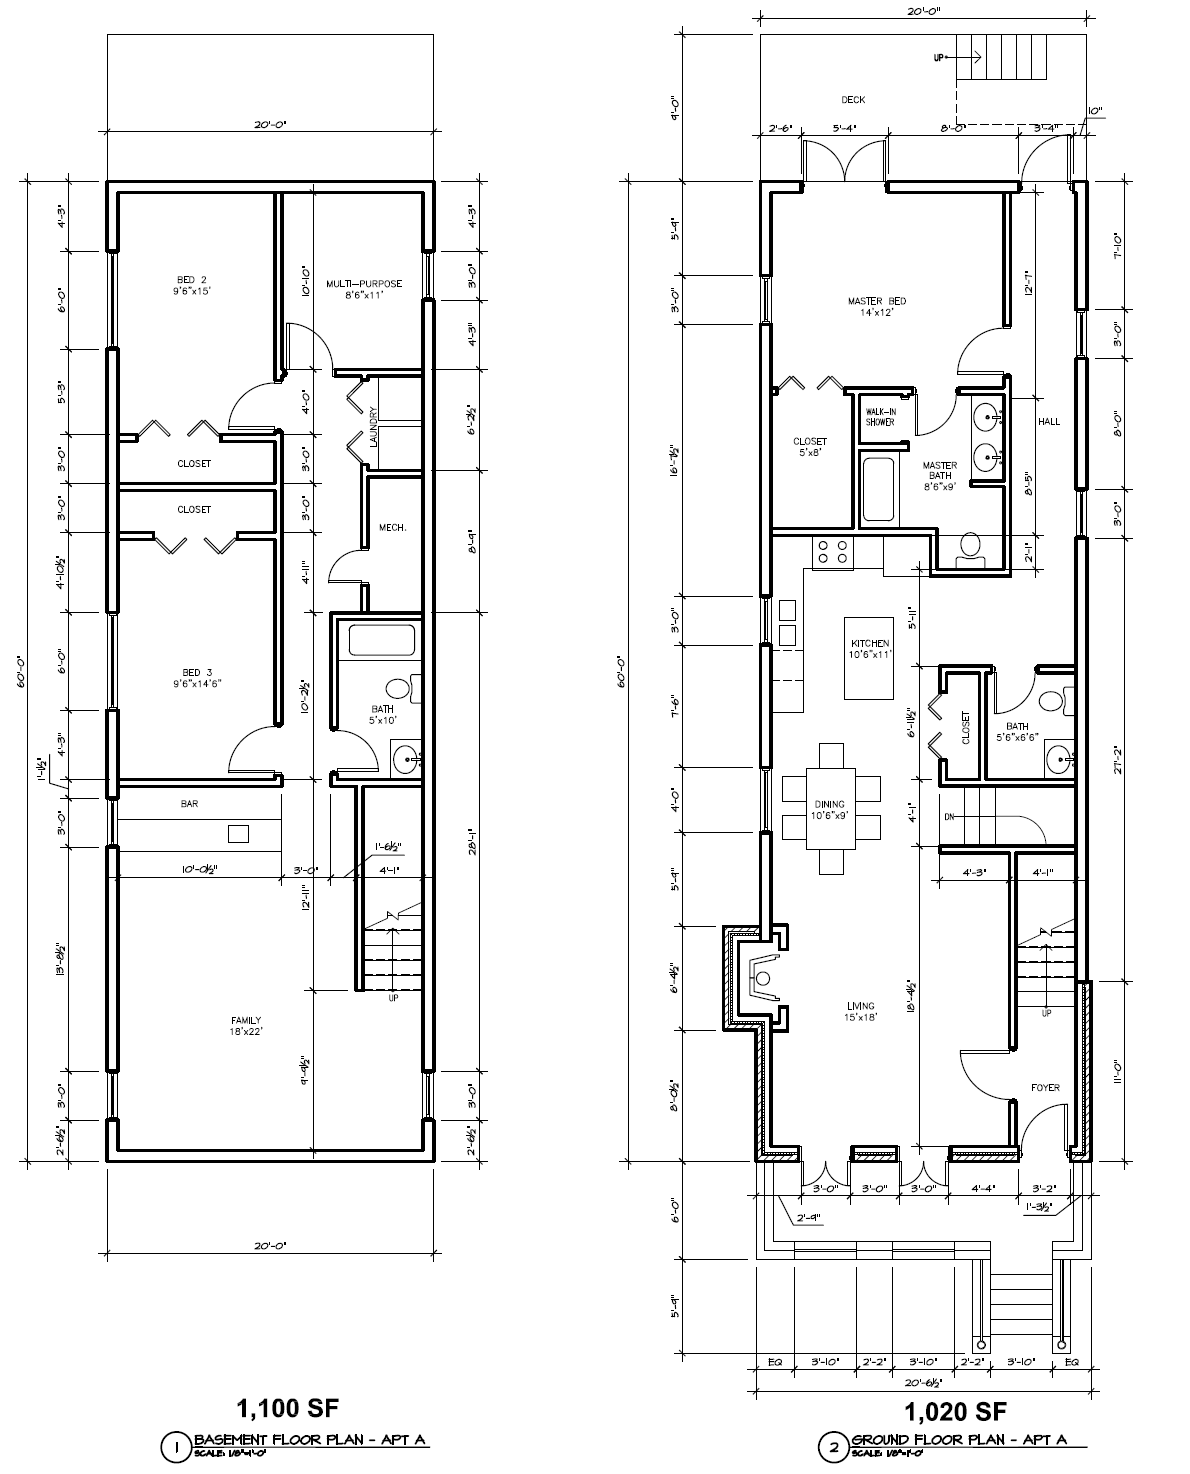 Four bedroom duplex house plans interesting bedroom for One bedroom duplex plans